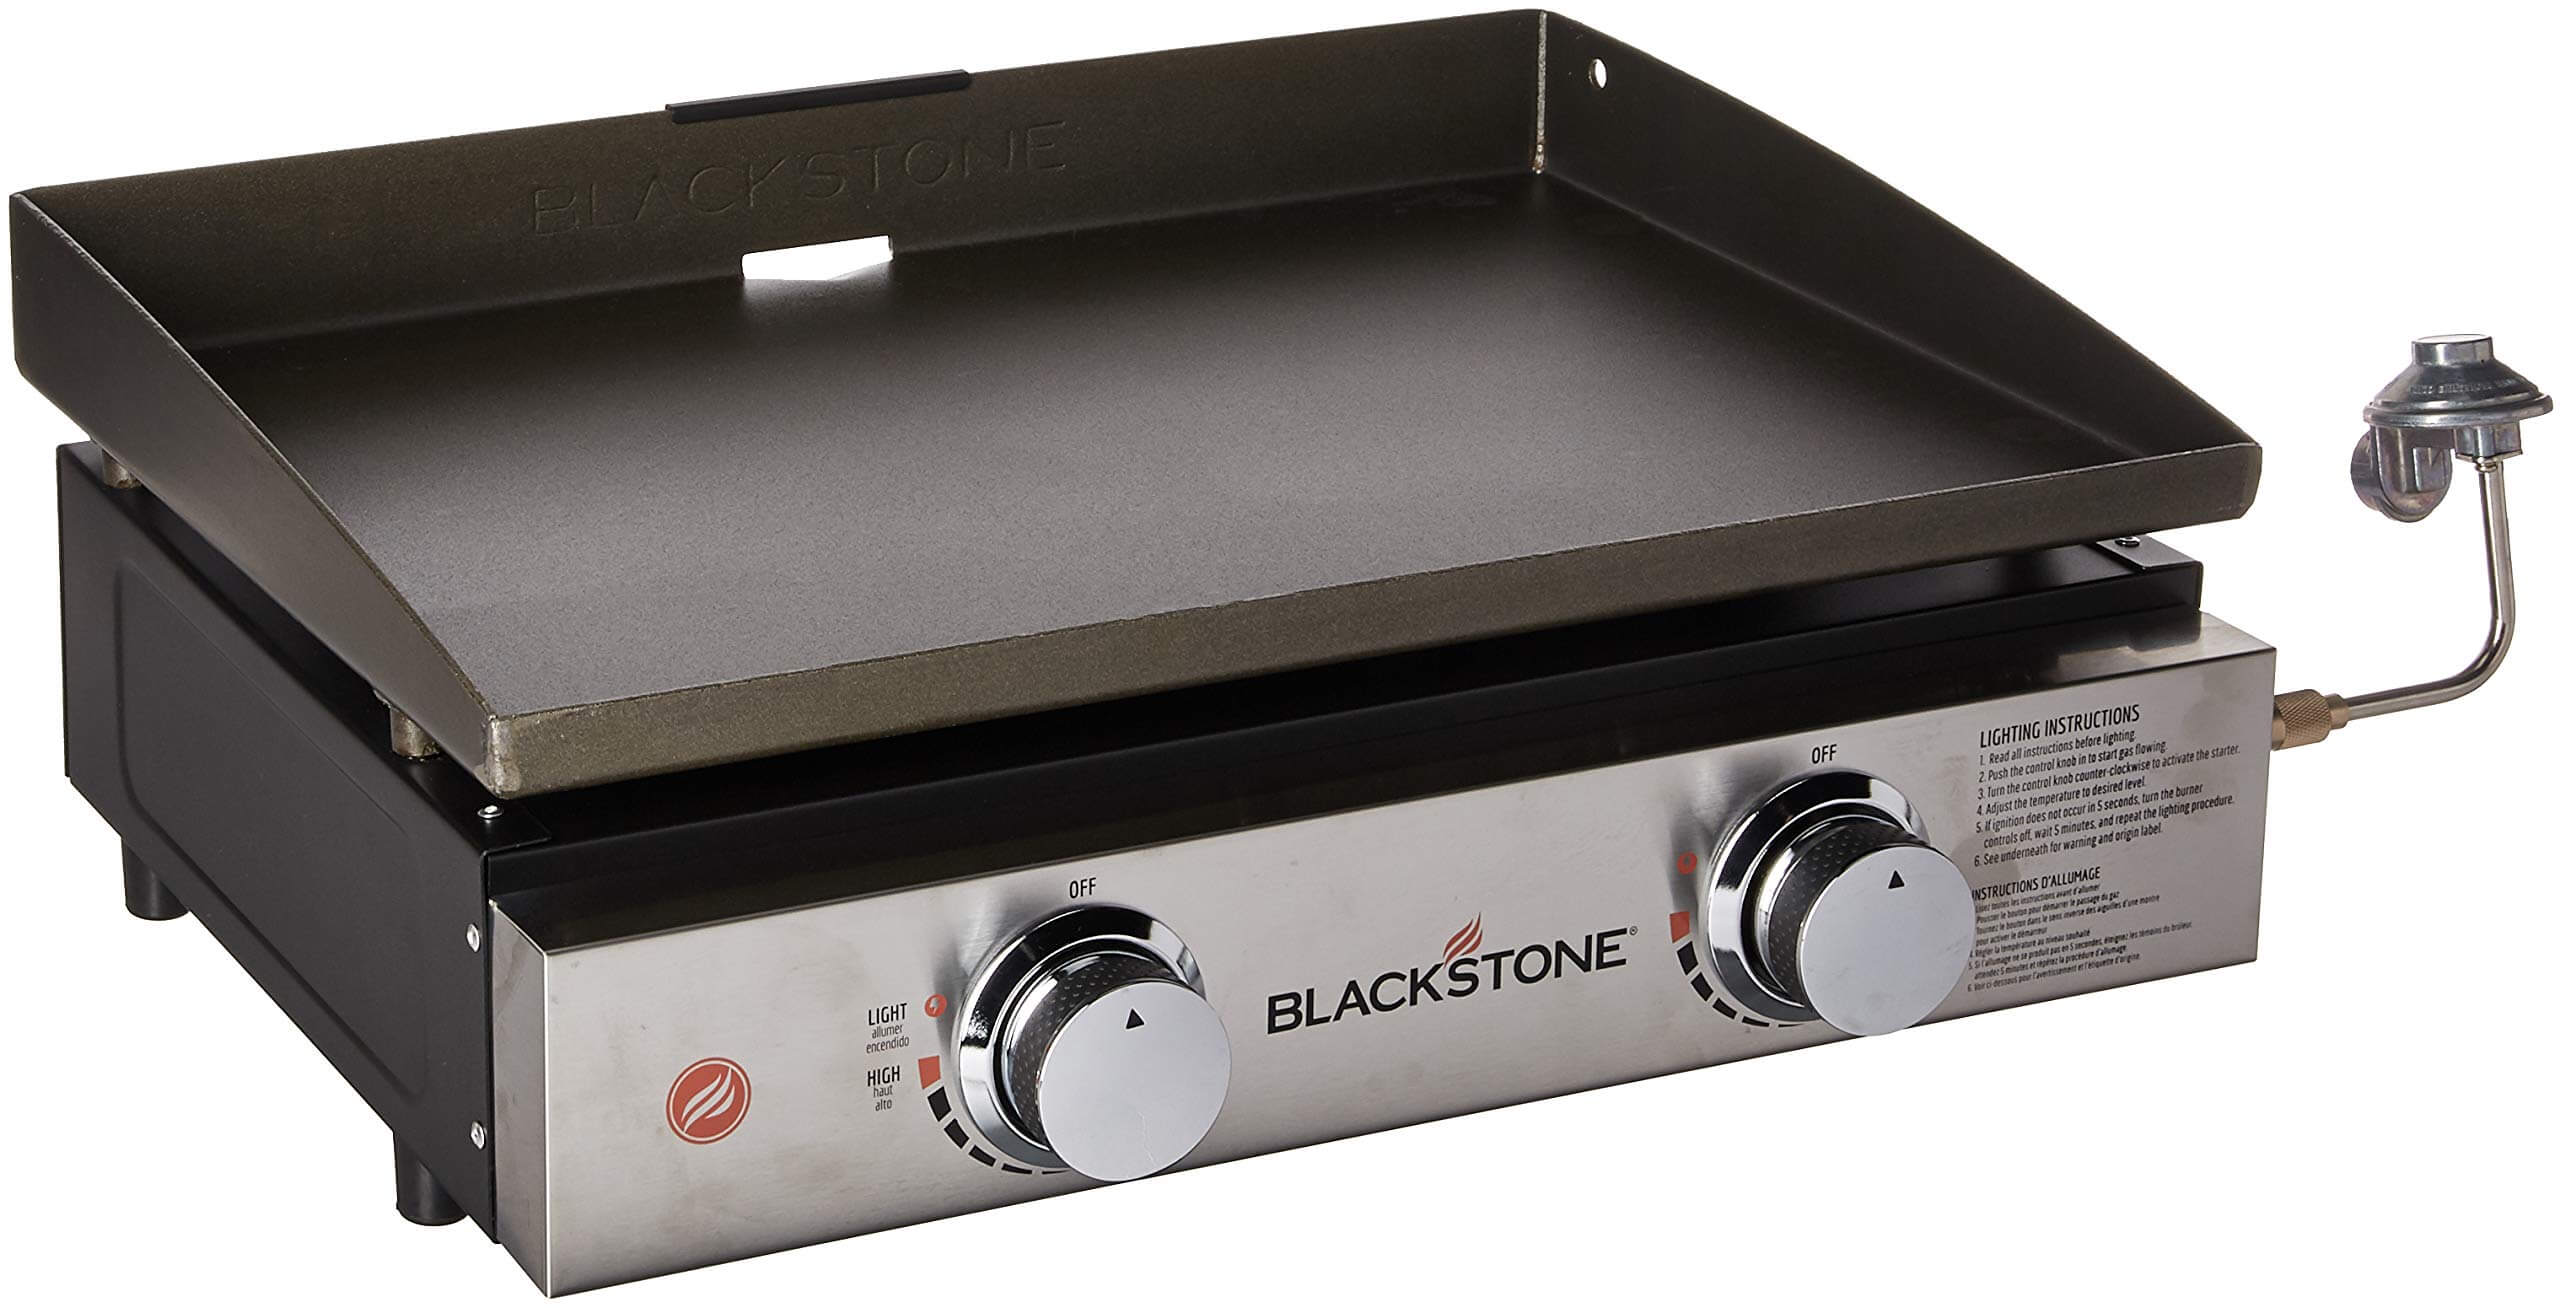 best grill brands, blackstone flat top grill, 22 inch blackstone griddle, blackstone grill 22 inch